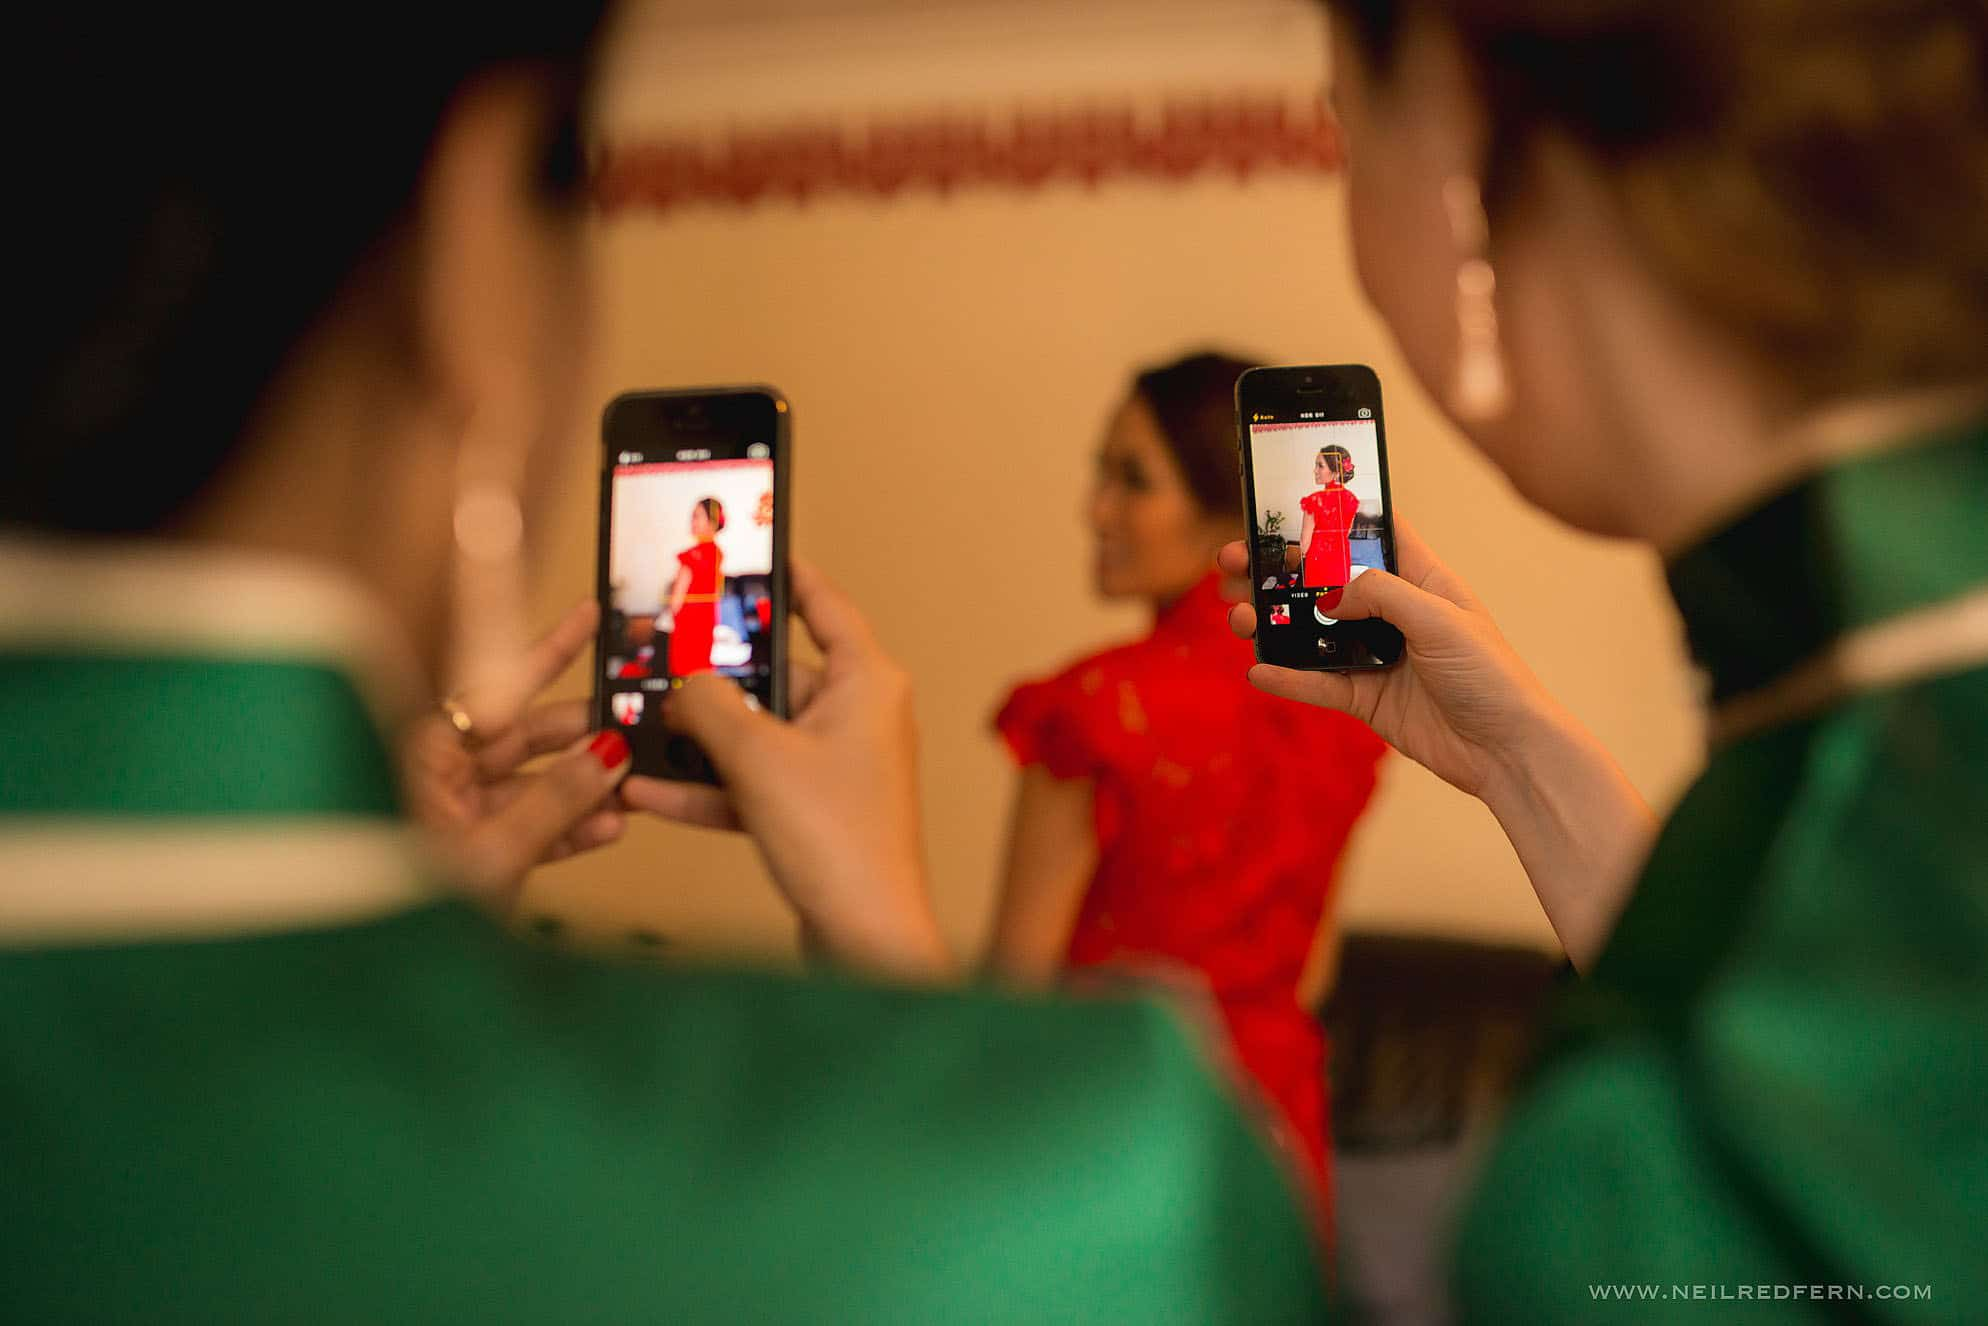 wedding guests taking photographs on phones